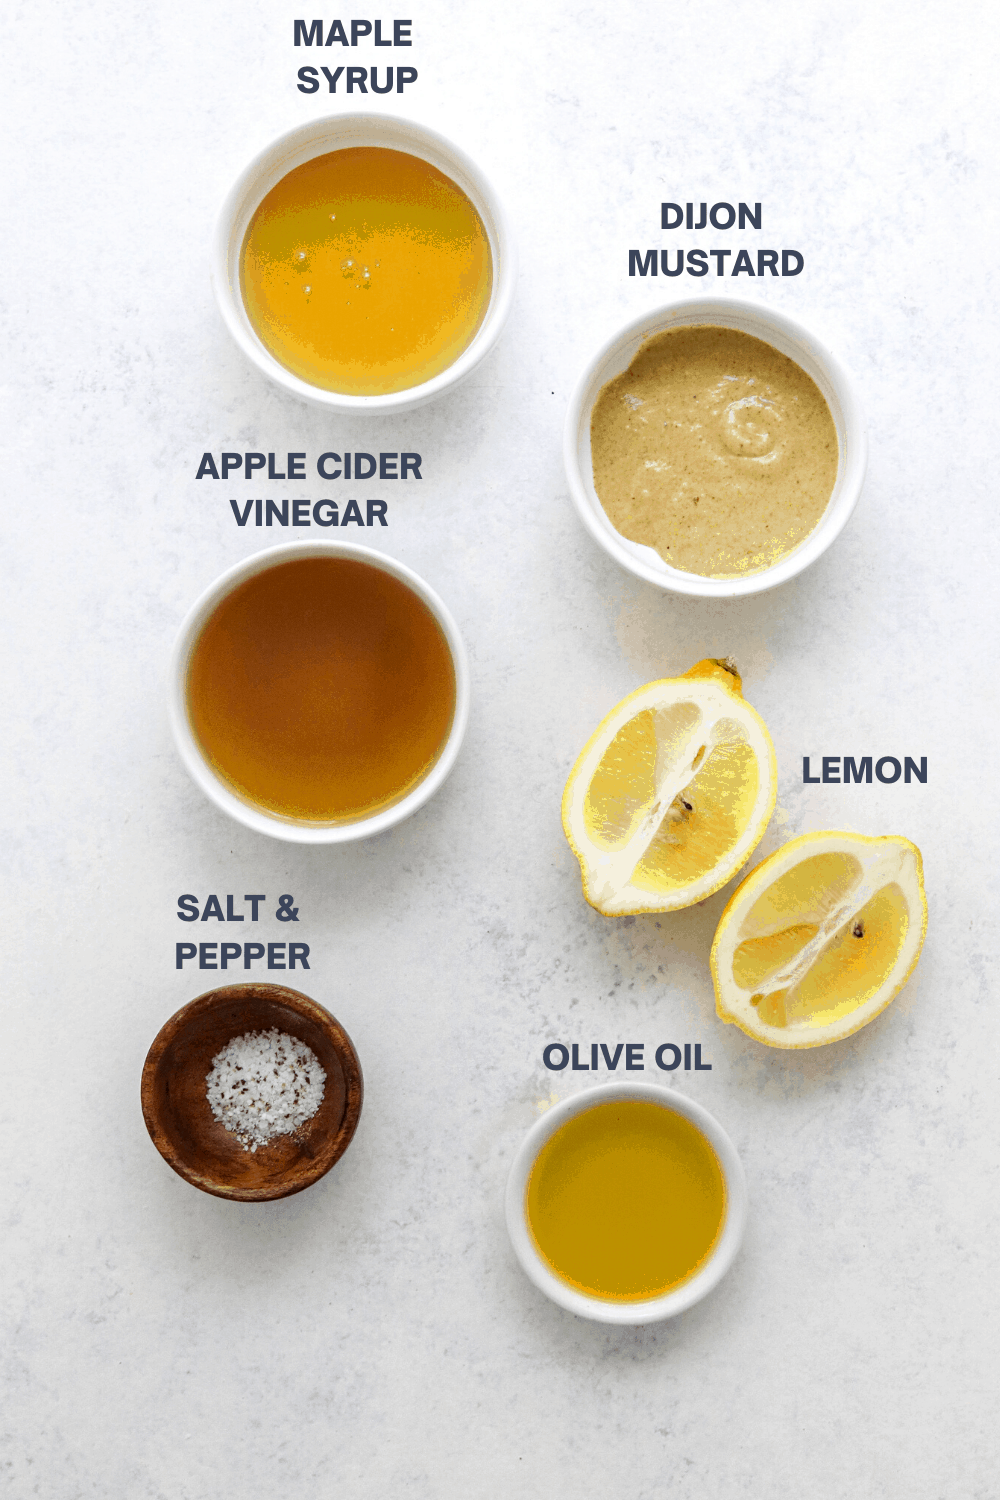 Small white bowls filled with mustard, vinegar and honey spread out on a white surface with a sliced lemon next to one of the bowl and a wooden bowl filled with salt and pepper in front of it.